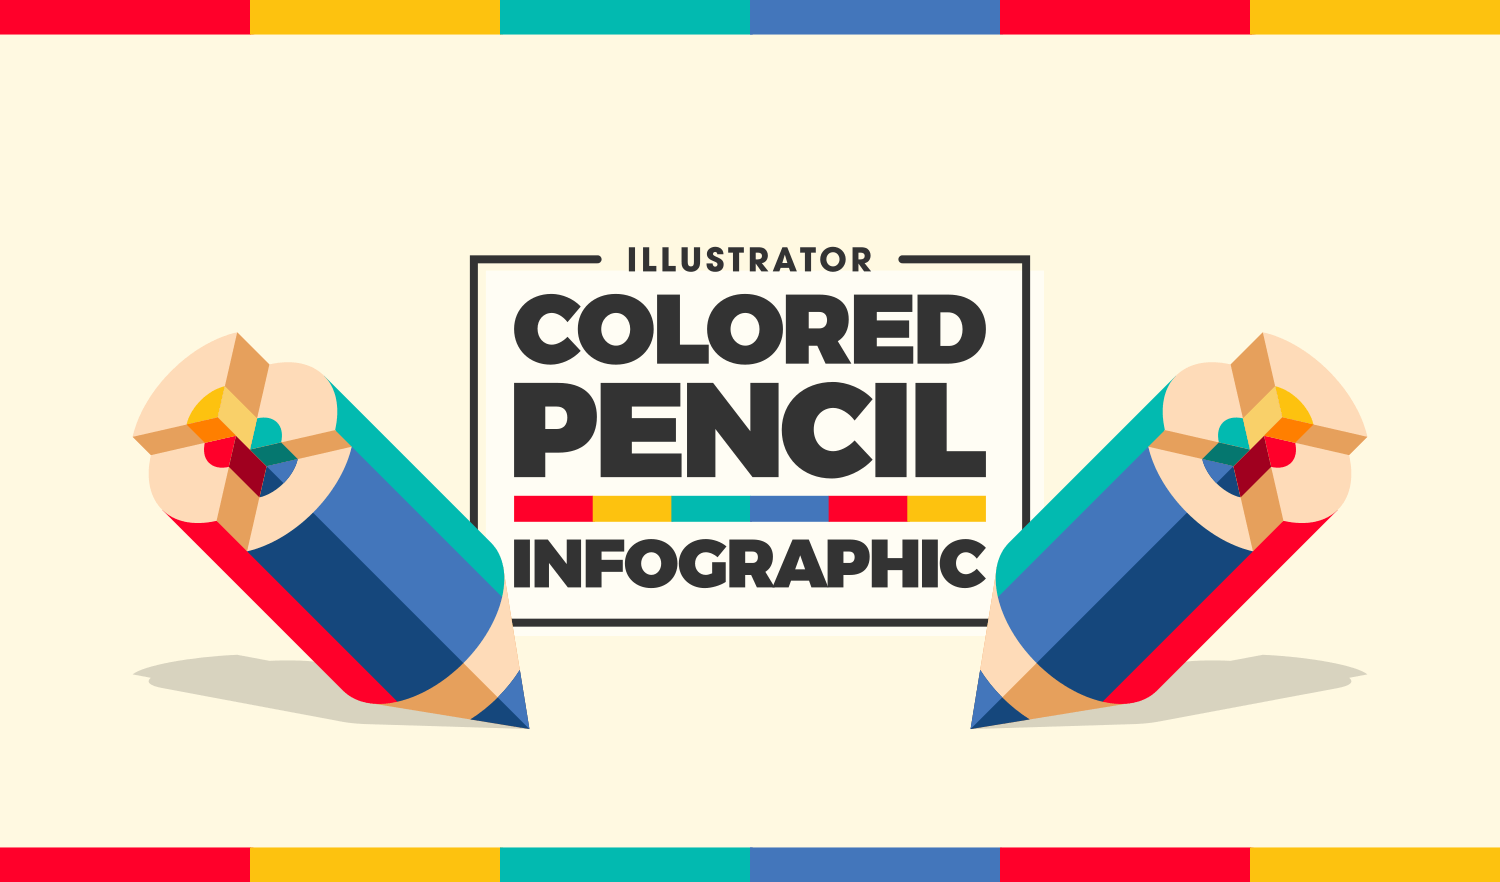 Illustrator Infographic Template: Free Download and Tutorial Video